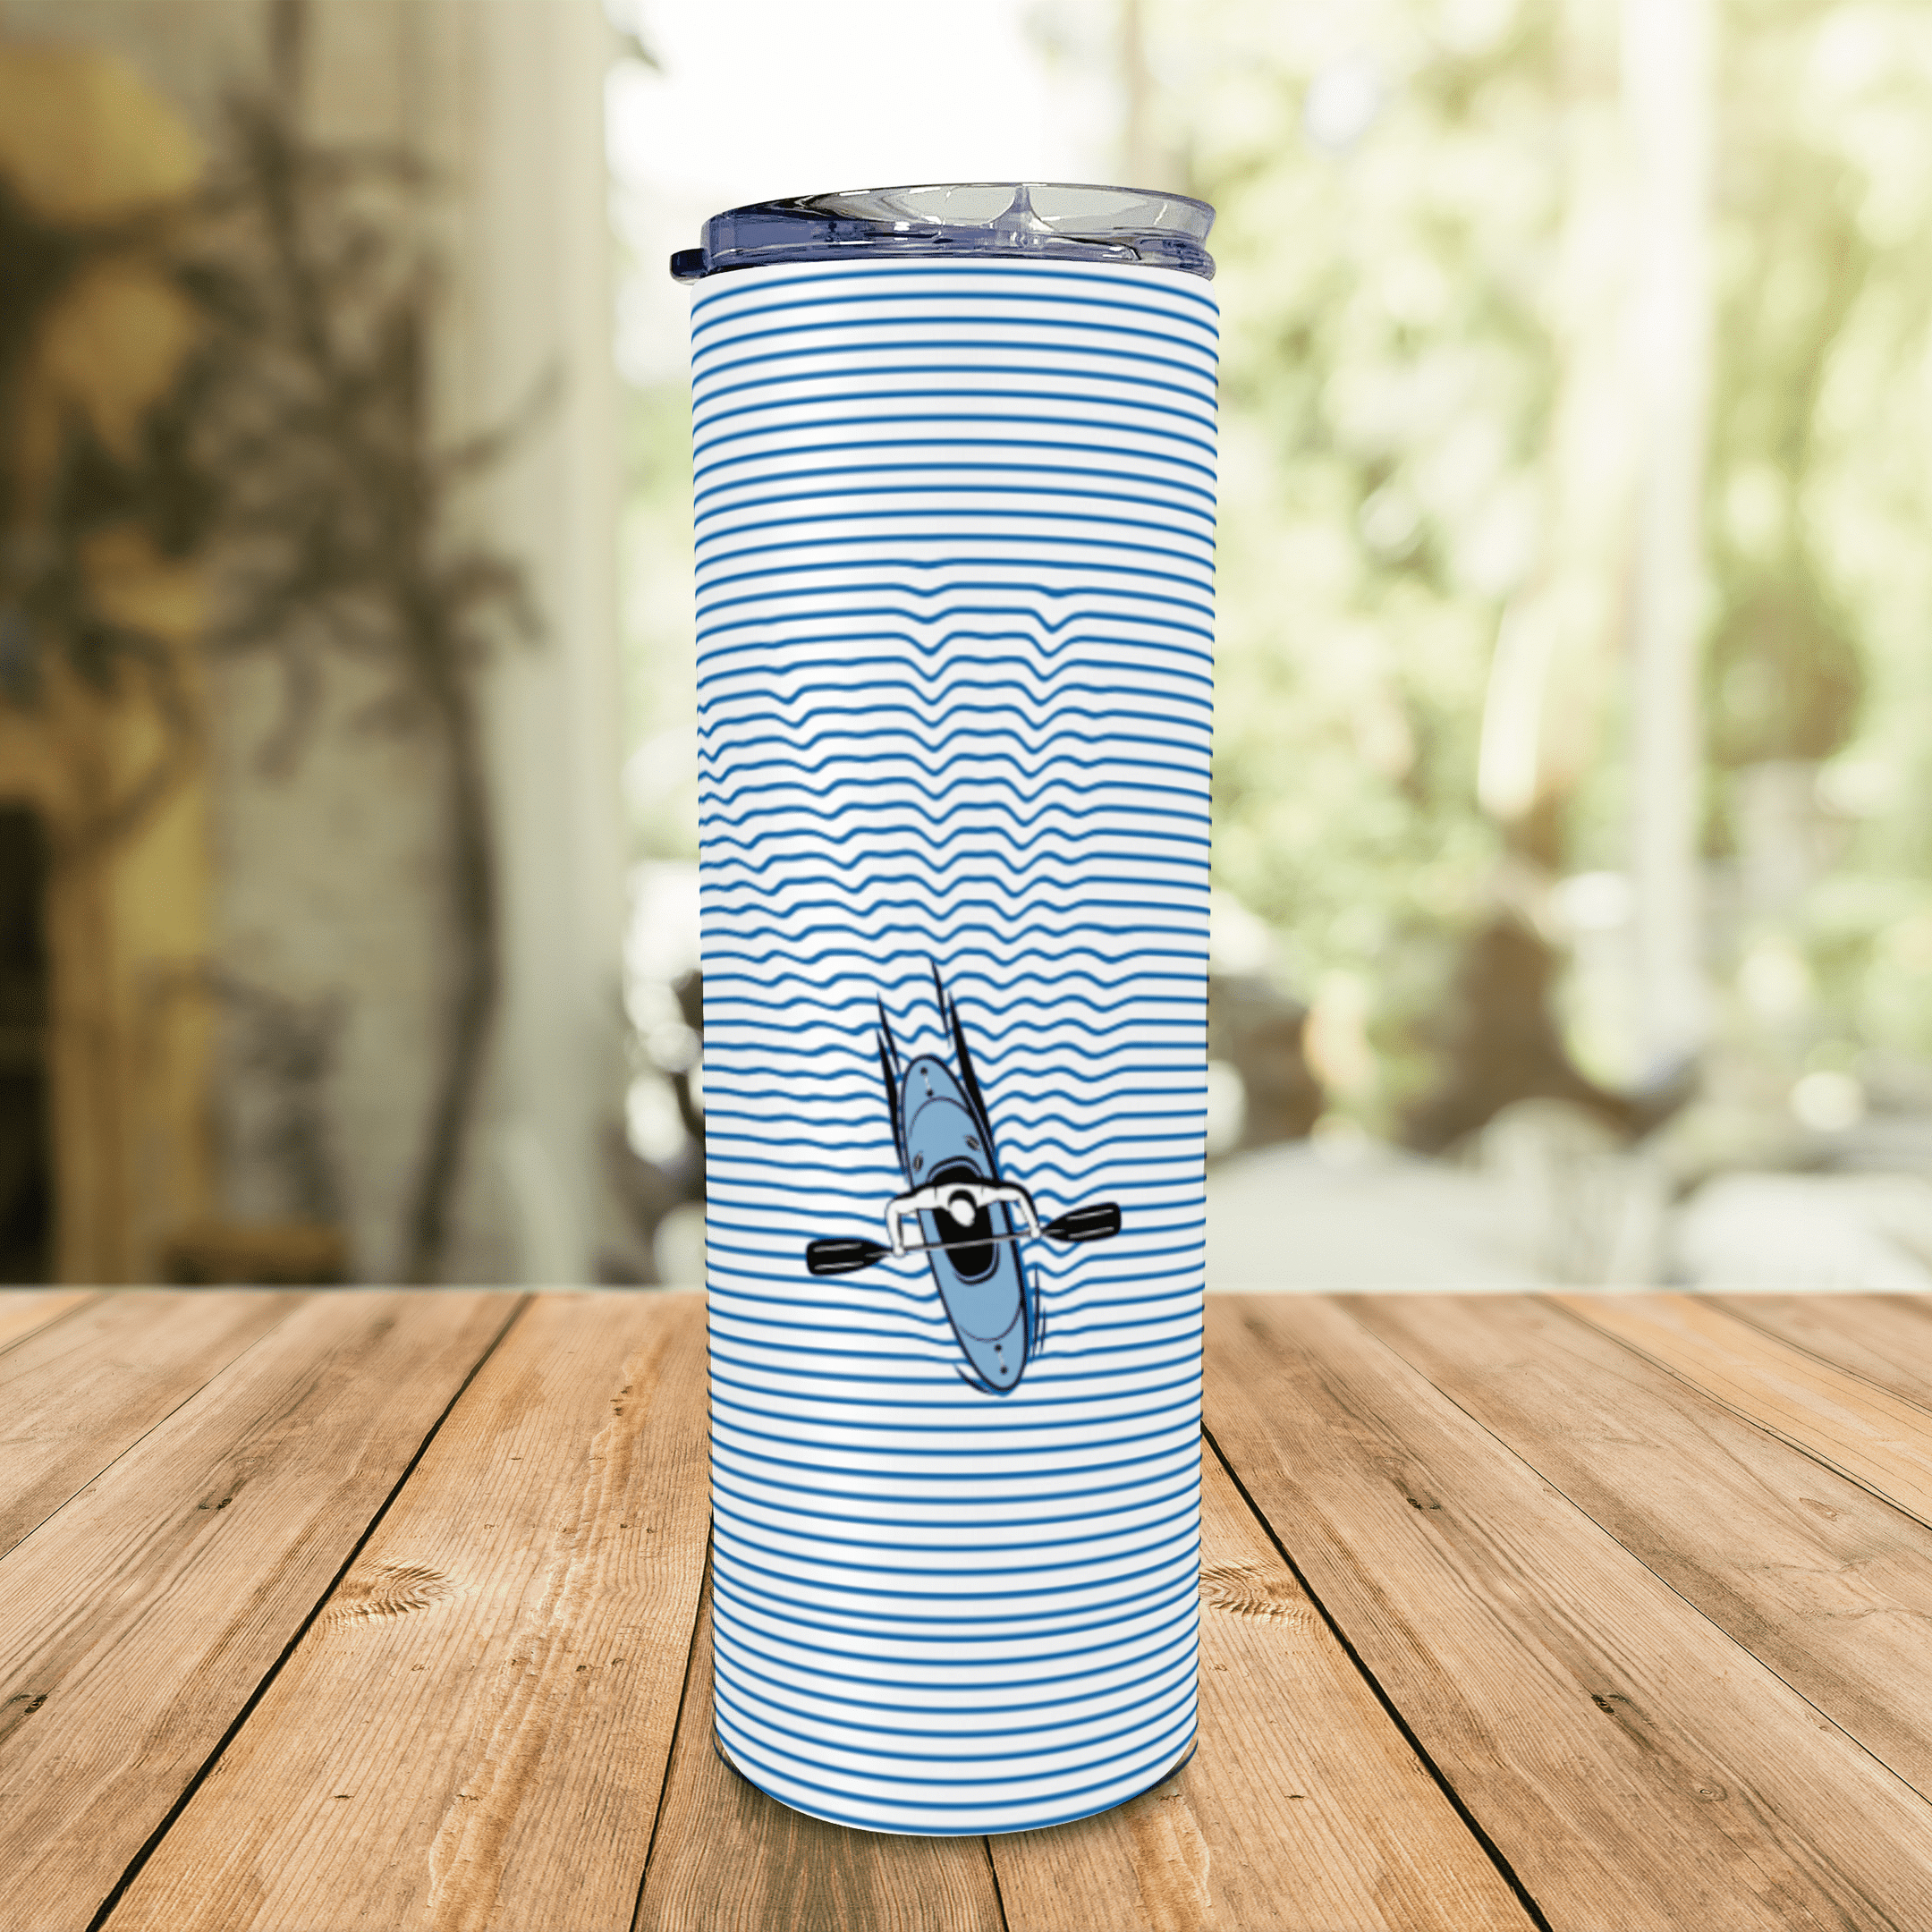 Rowing Paddle A Kayak Lover - Eco Stainless Steel Skinny Tumbler Coffee Cup